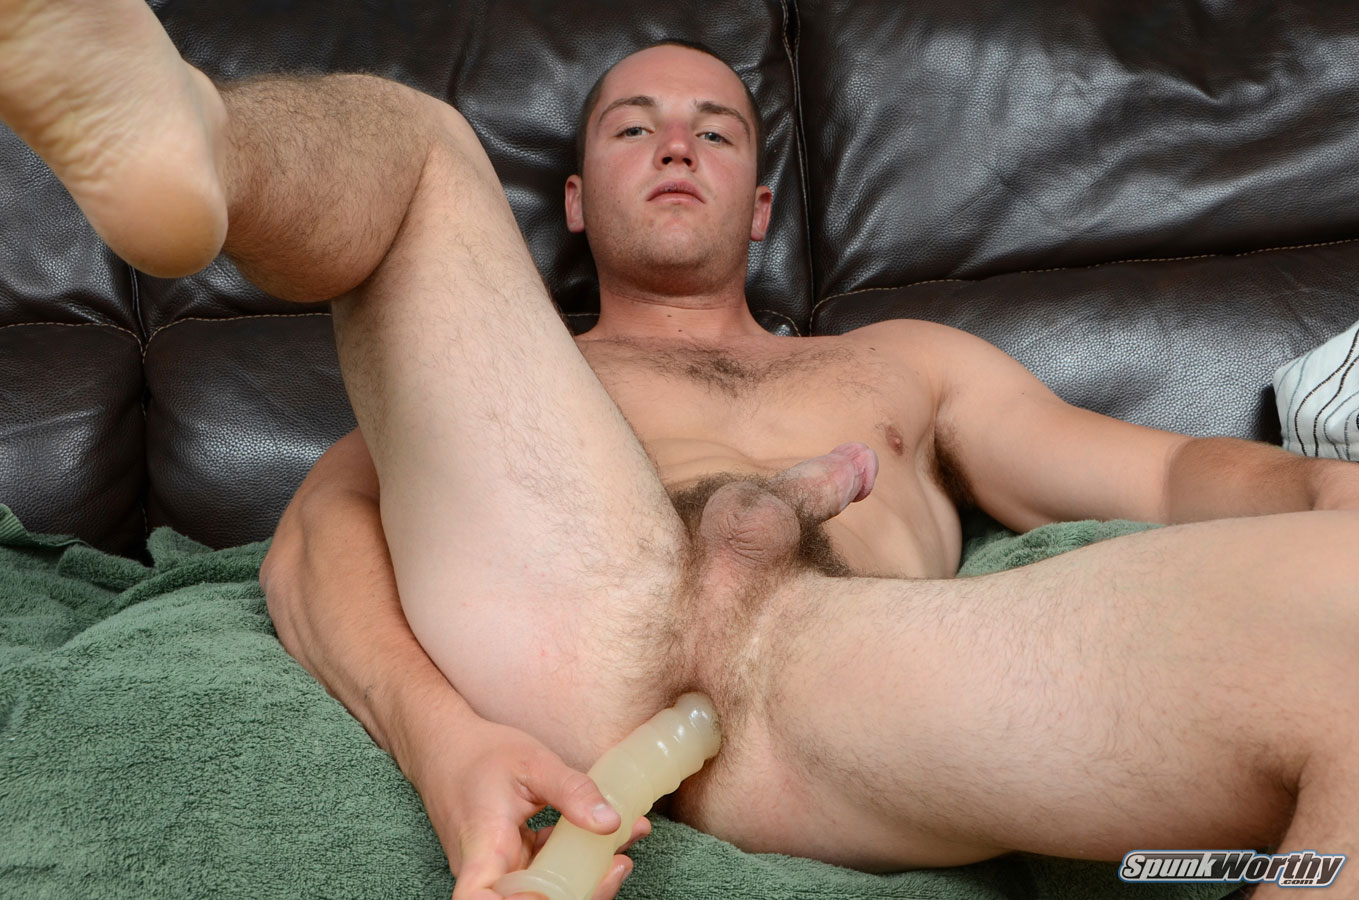 SpunkWorthy Dean Straight Marine Uses A Dildo On Hairy Ass Amateur Gay Porn 05 Ripped Marine Fucks His Striaght Hairy Ass With A Dildo